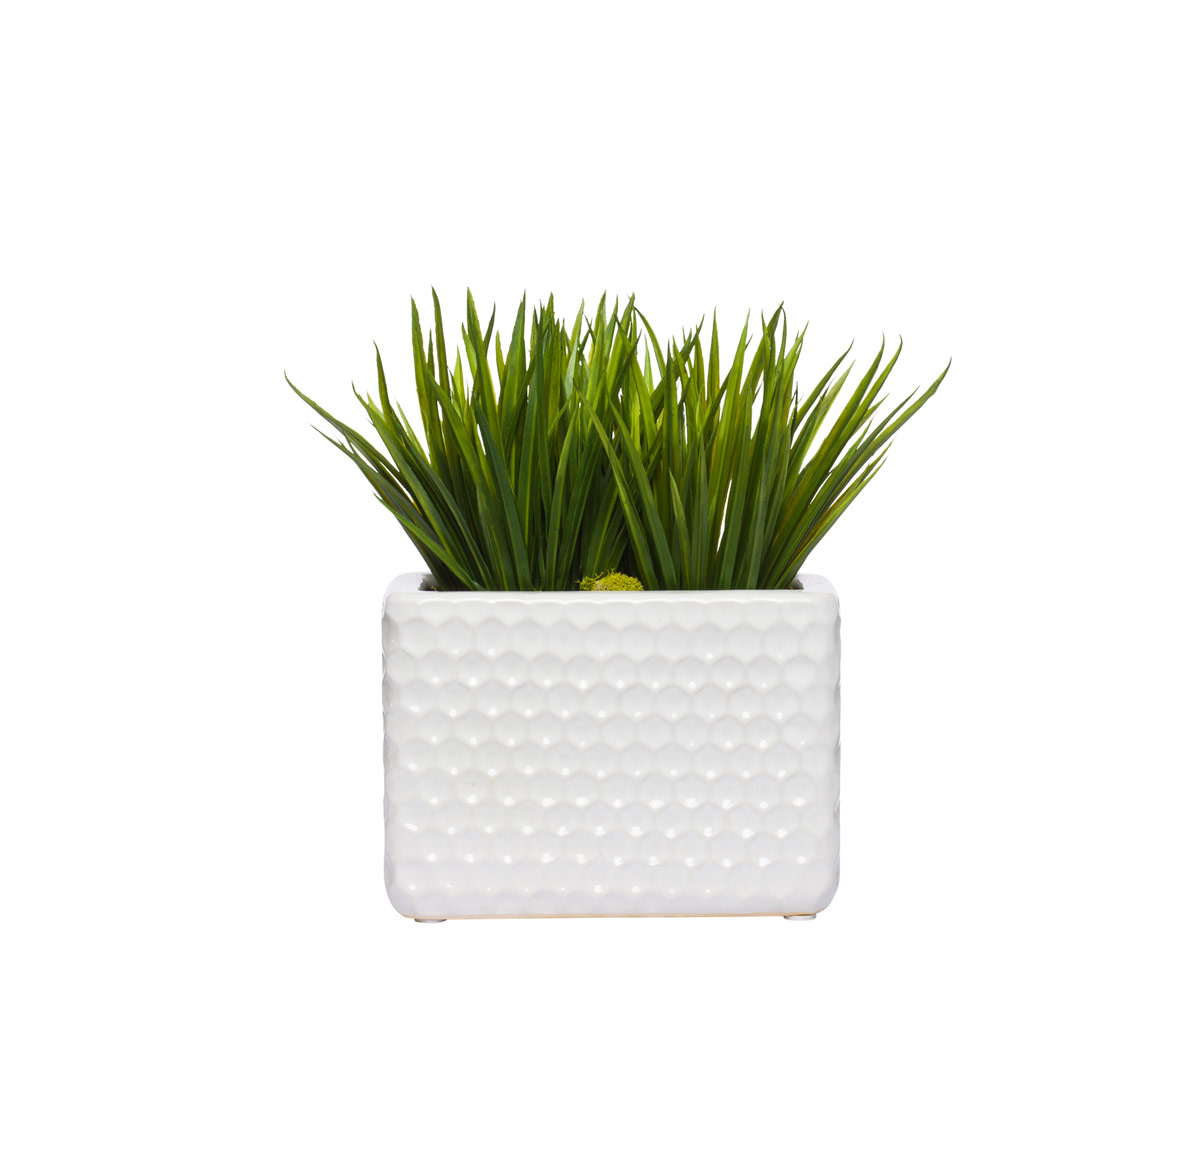 Grass in White Large Honeycomb Planter